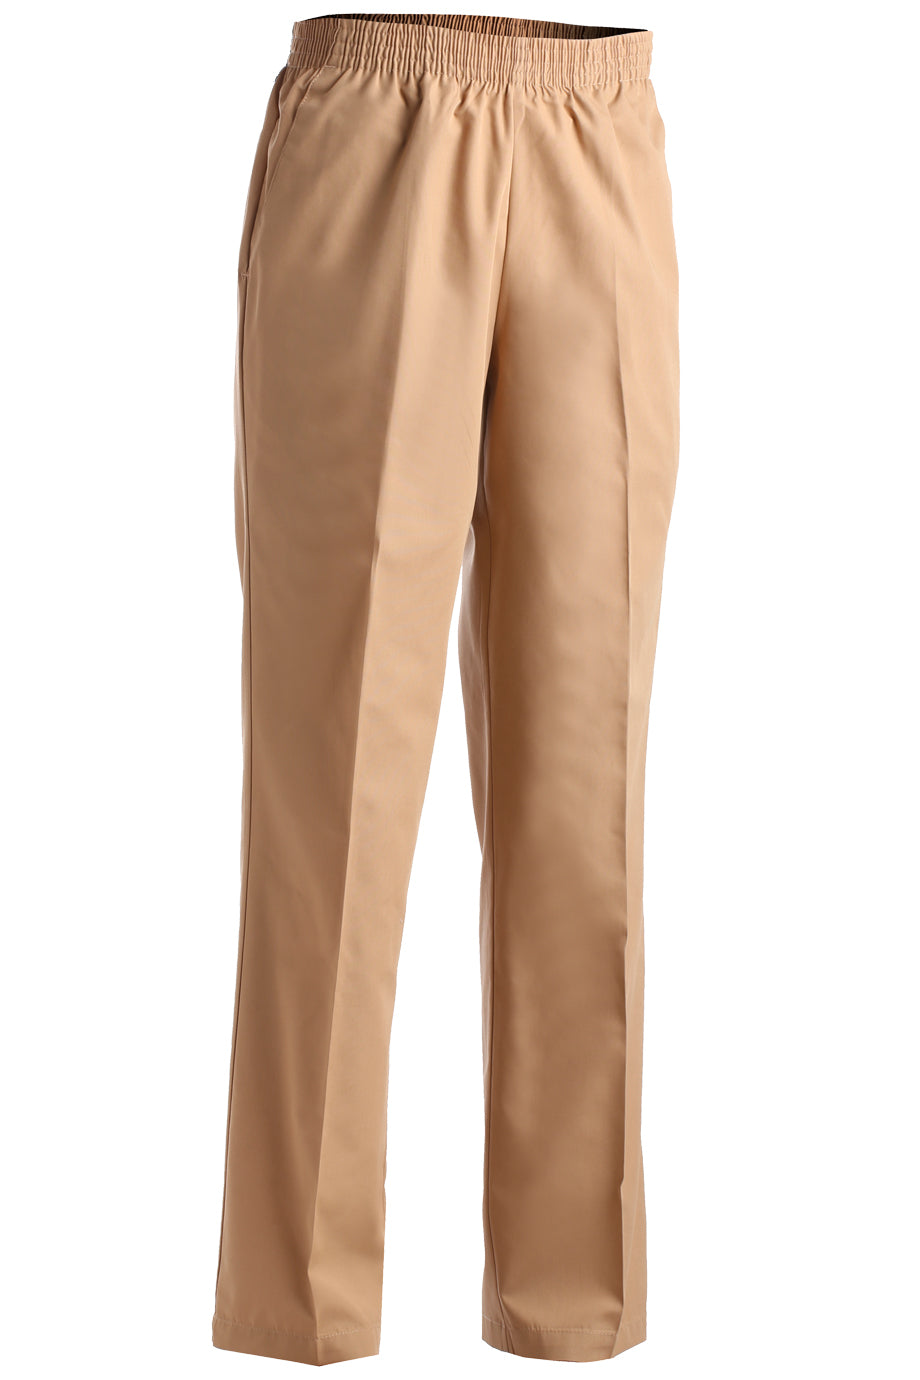 Women's Pull-On Pant